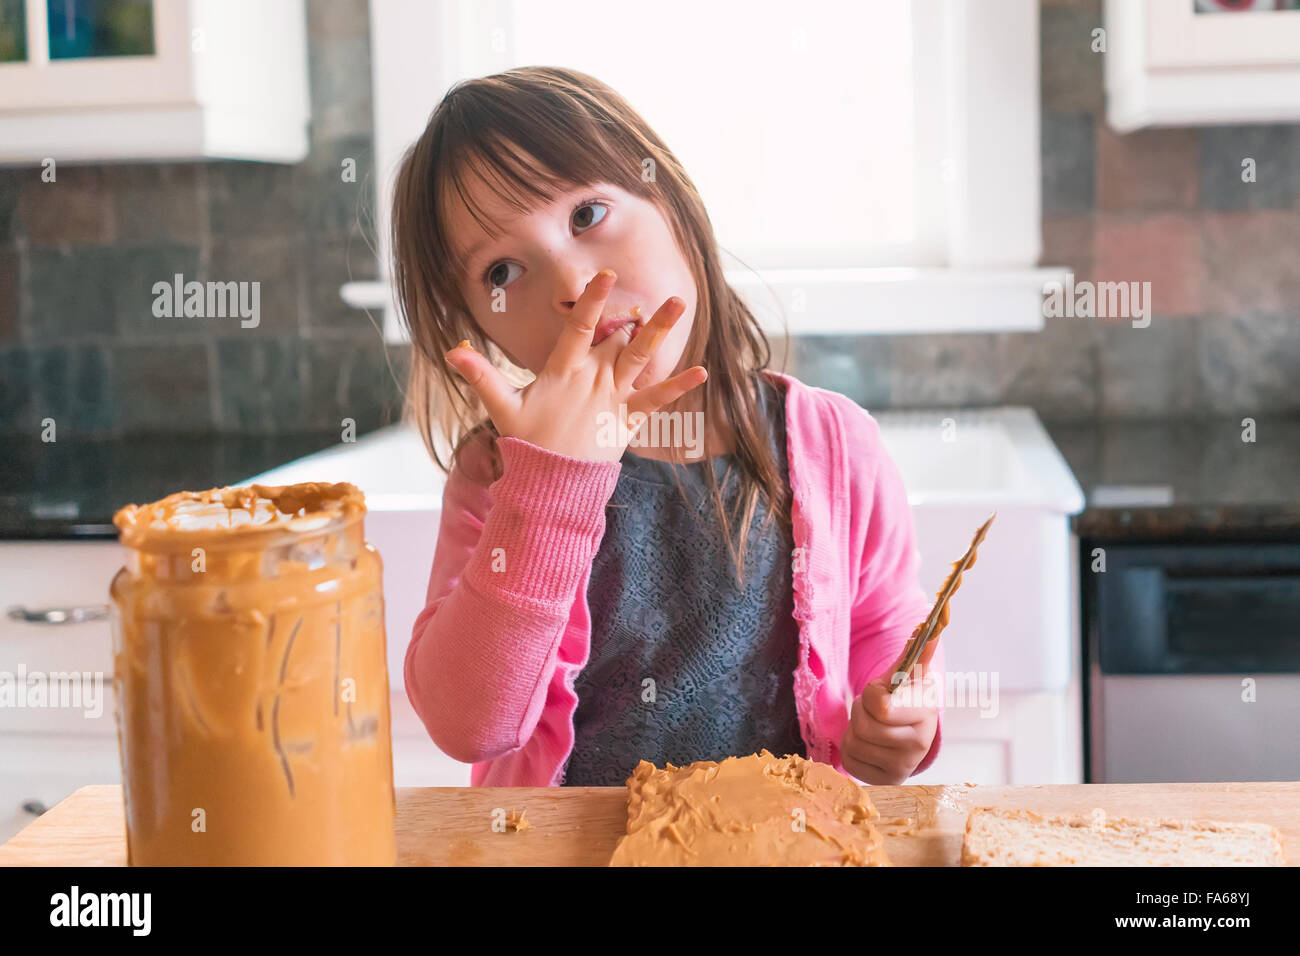 Girl making peanut butter sandwich, licking fingers - Stock Image